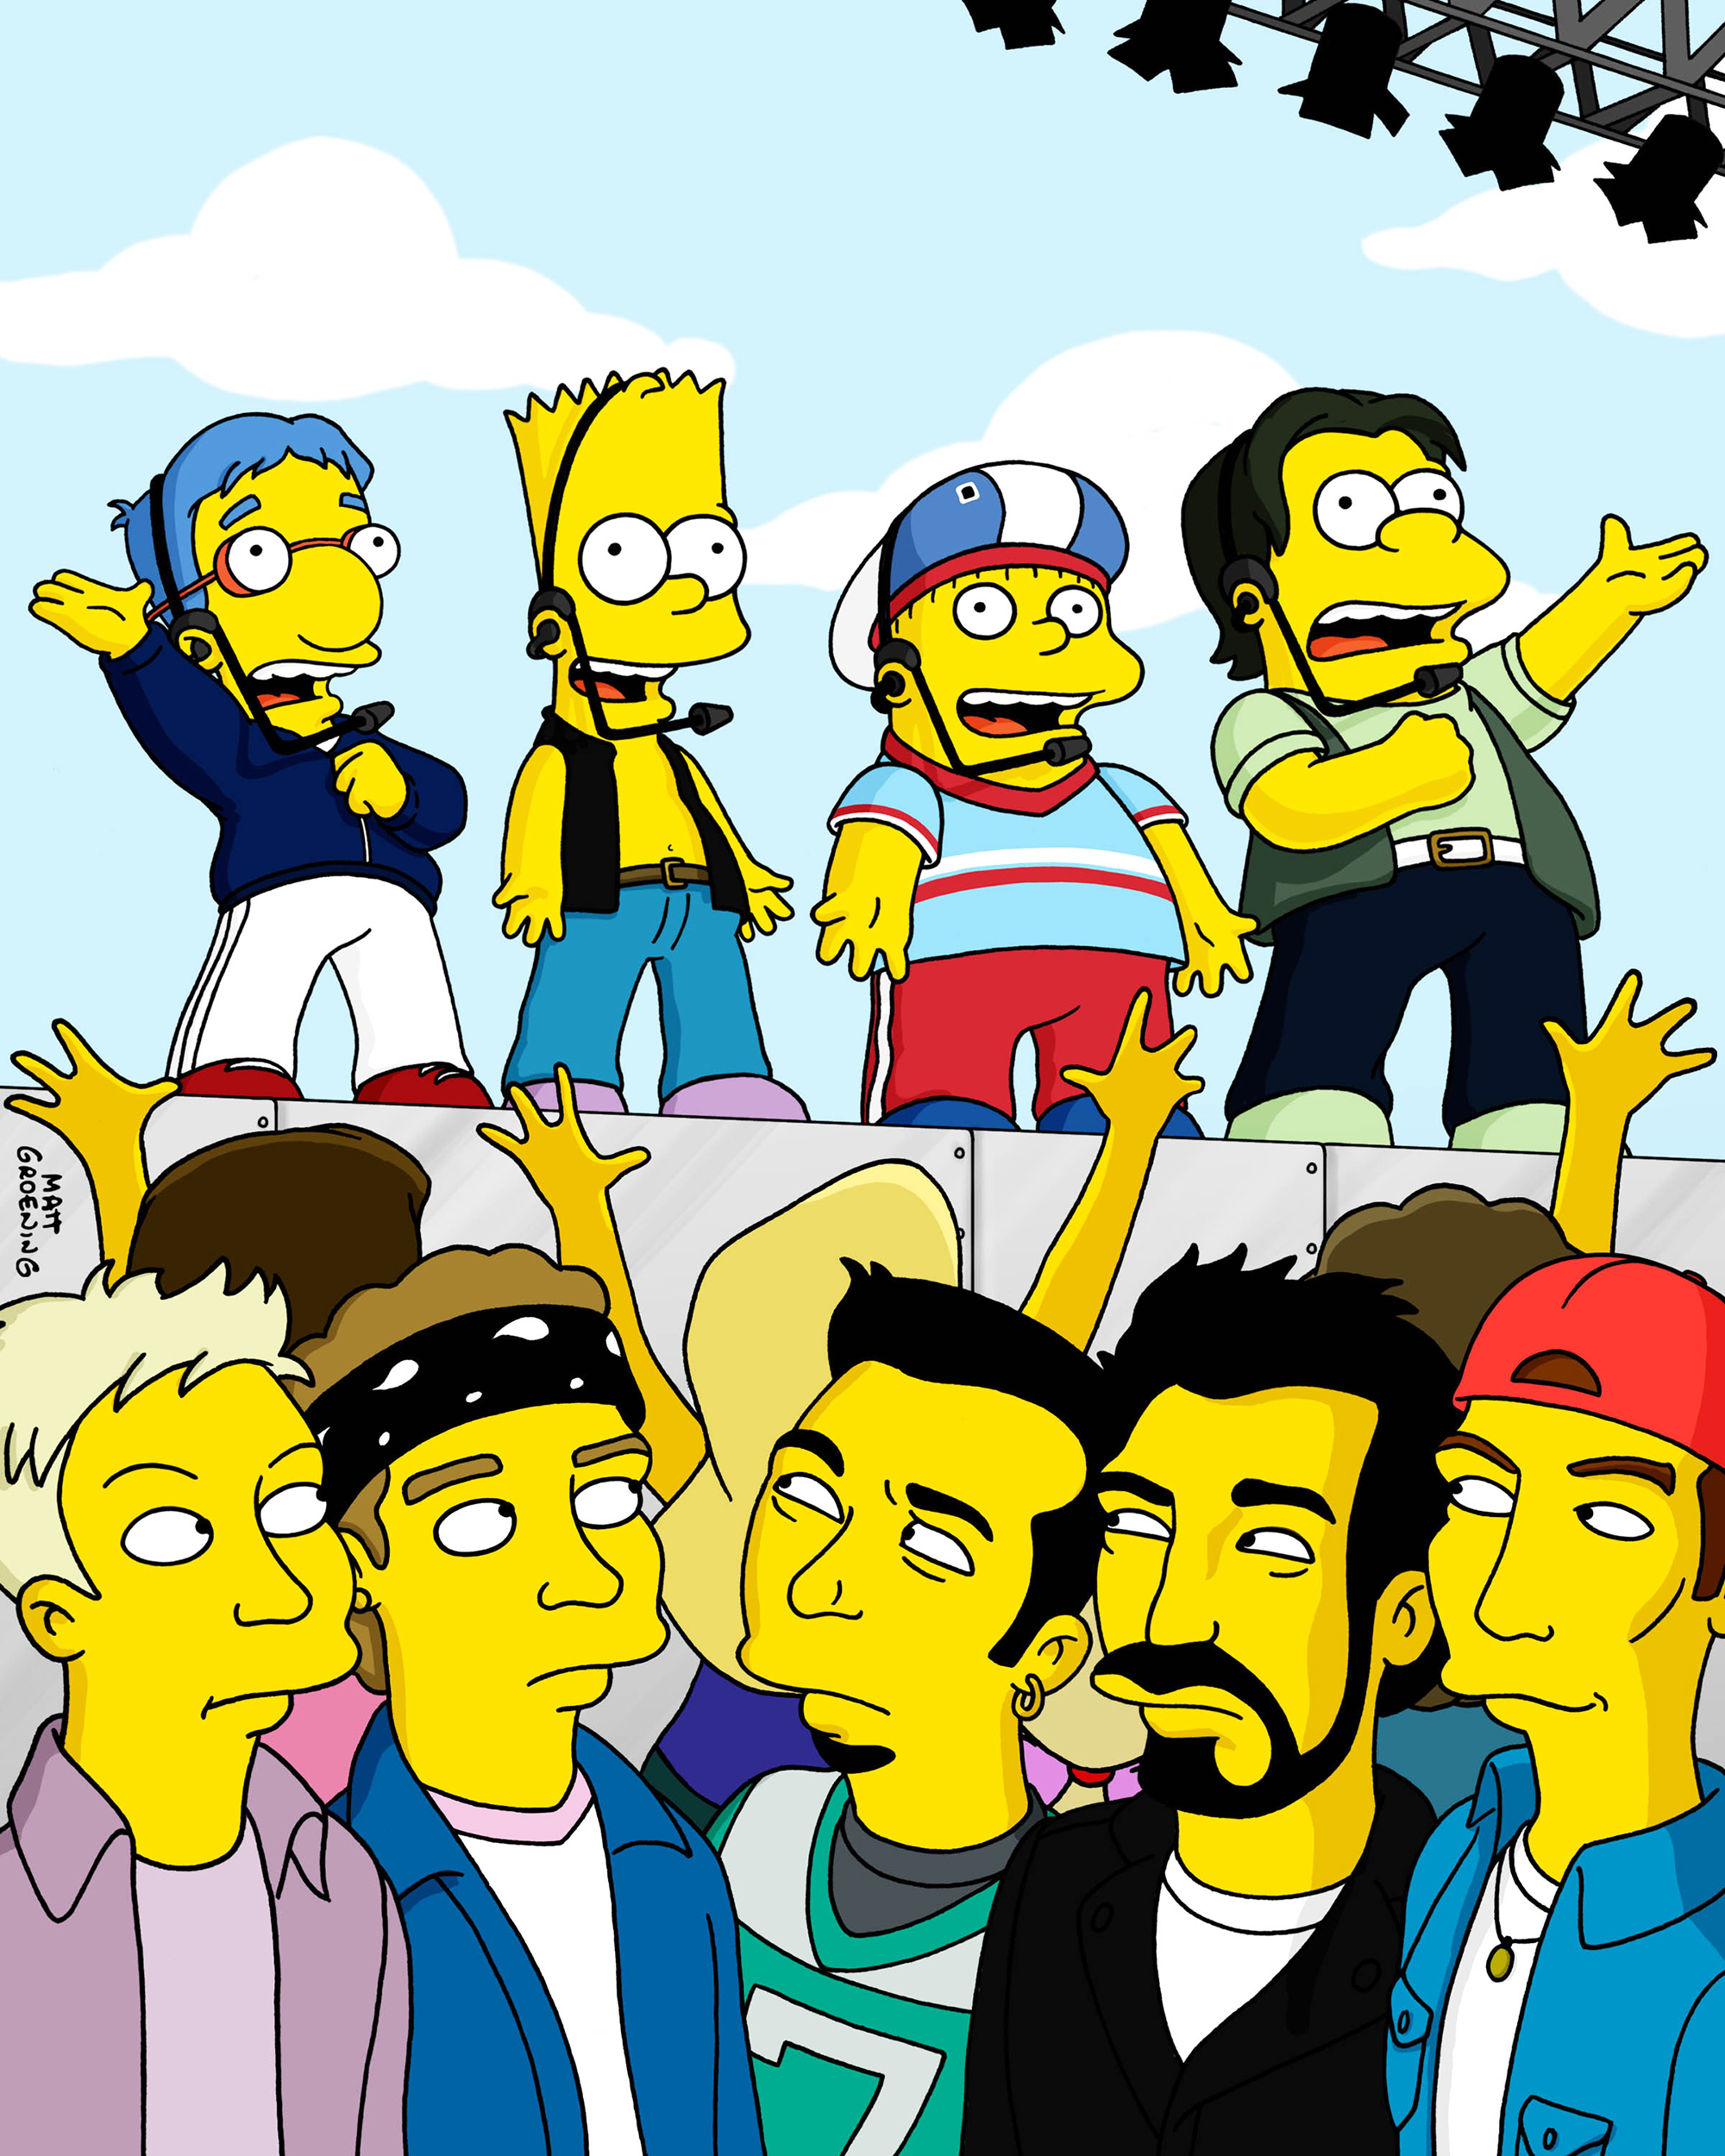 """<b>'N Sync:</b> The '90s boy band 'N Sync made a guest appearance on the season 12 episode """"New Kids on the Blecch"""" in 2001. The episode featured Bart and his friends as part of their own boy band, The Party Posse. The band also appeared through Maggie's memories in the 2002 episode """"Gump Roast."""""""